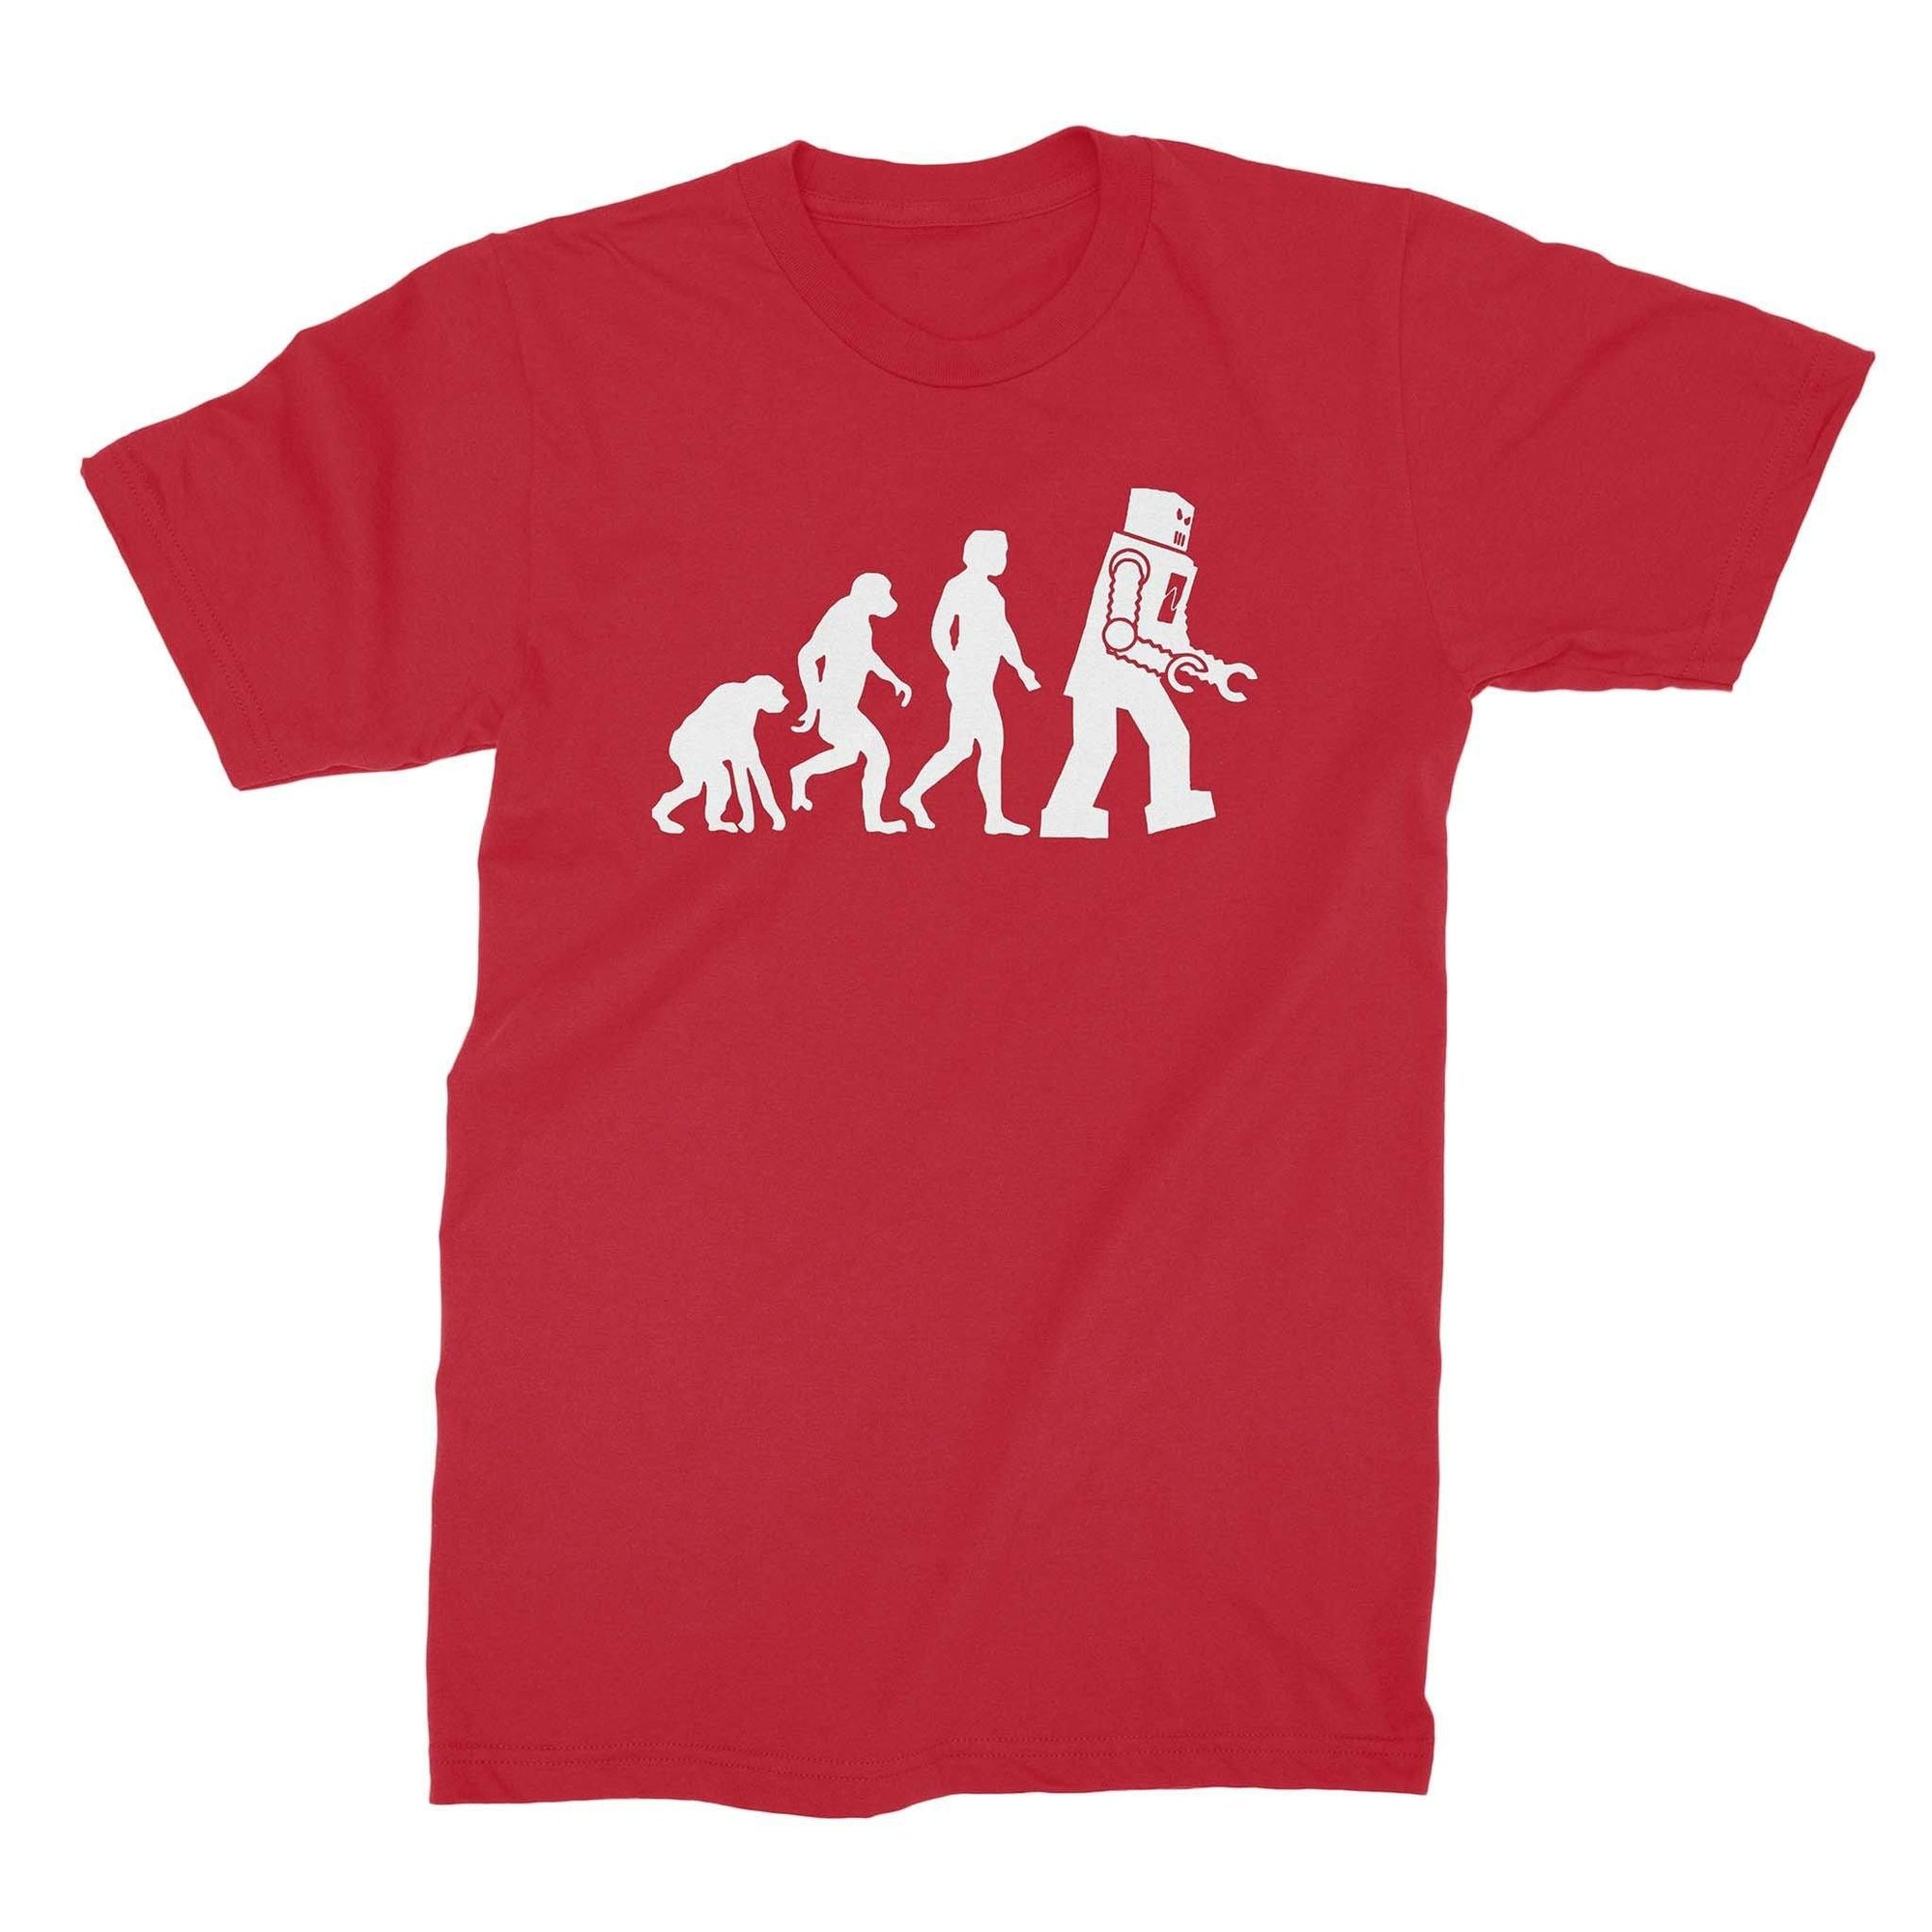 Robot Evolution Shirt-T-Shirts-Shirtasaurus-Basic-S-Red-Shirtasaurus